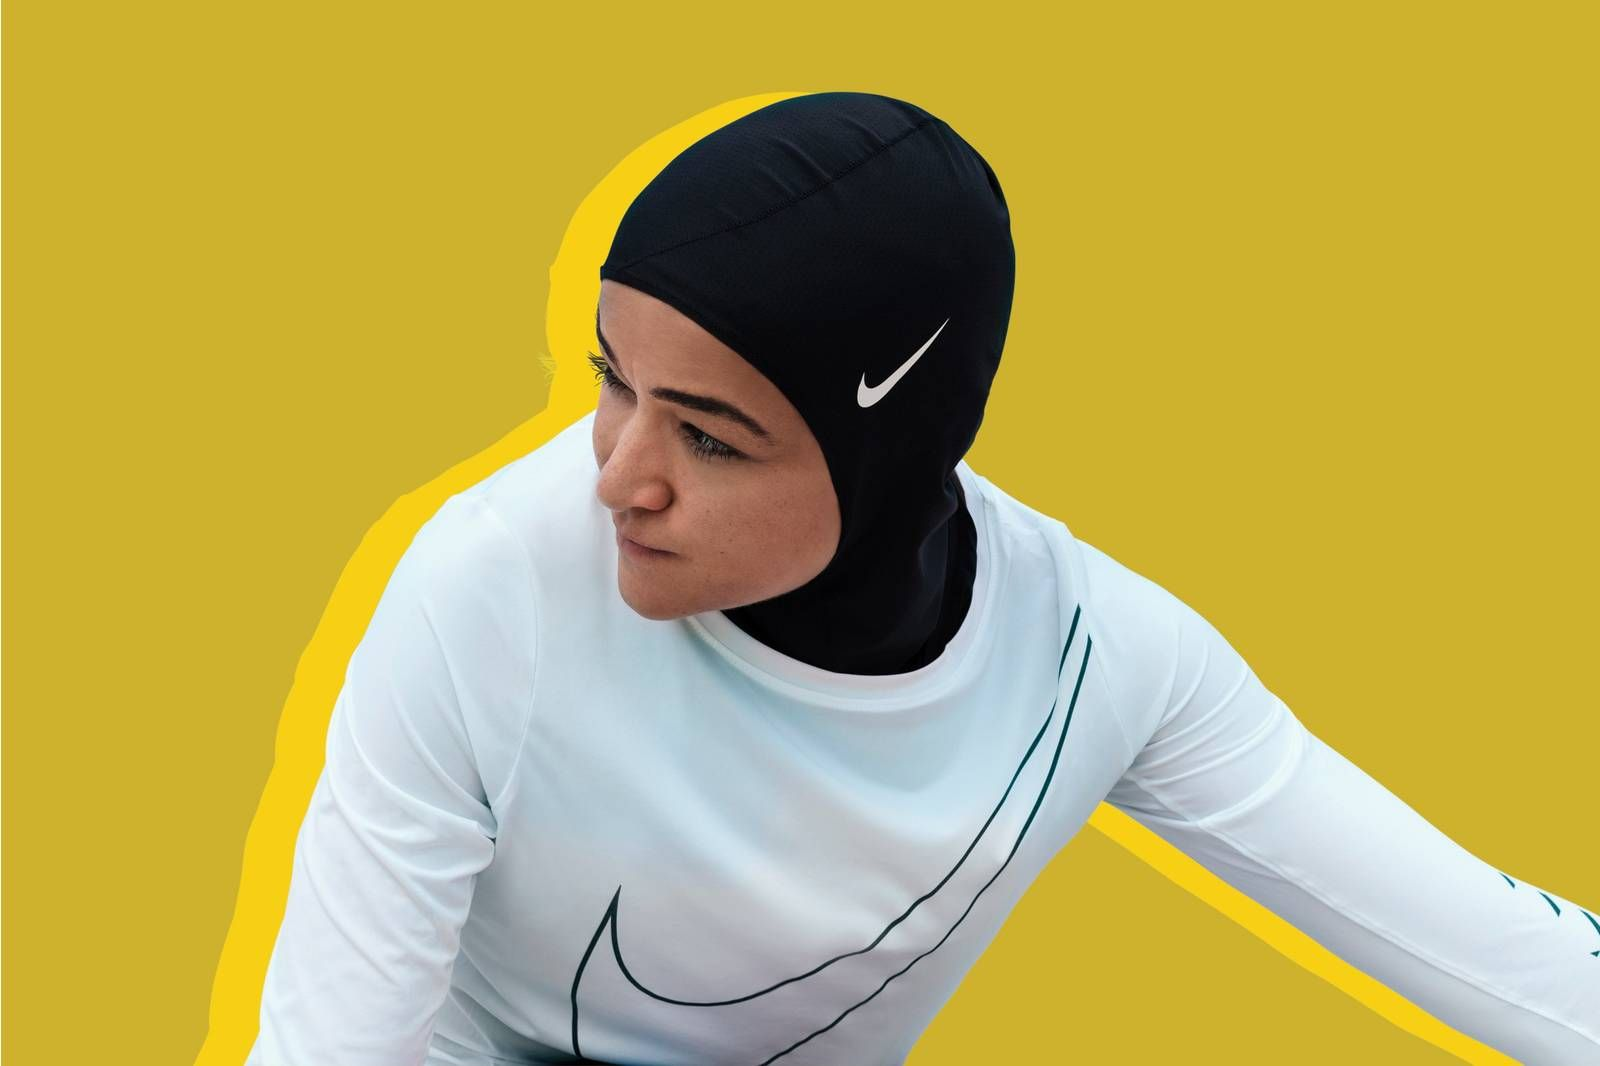 The 25 Best Inventions of 2017 Inventions, Sports hijab